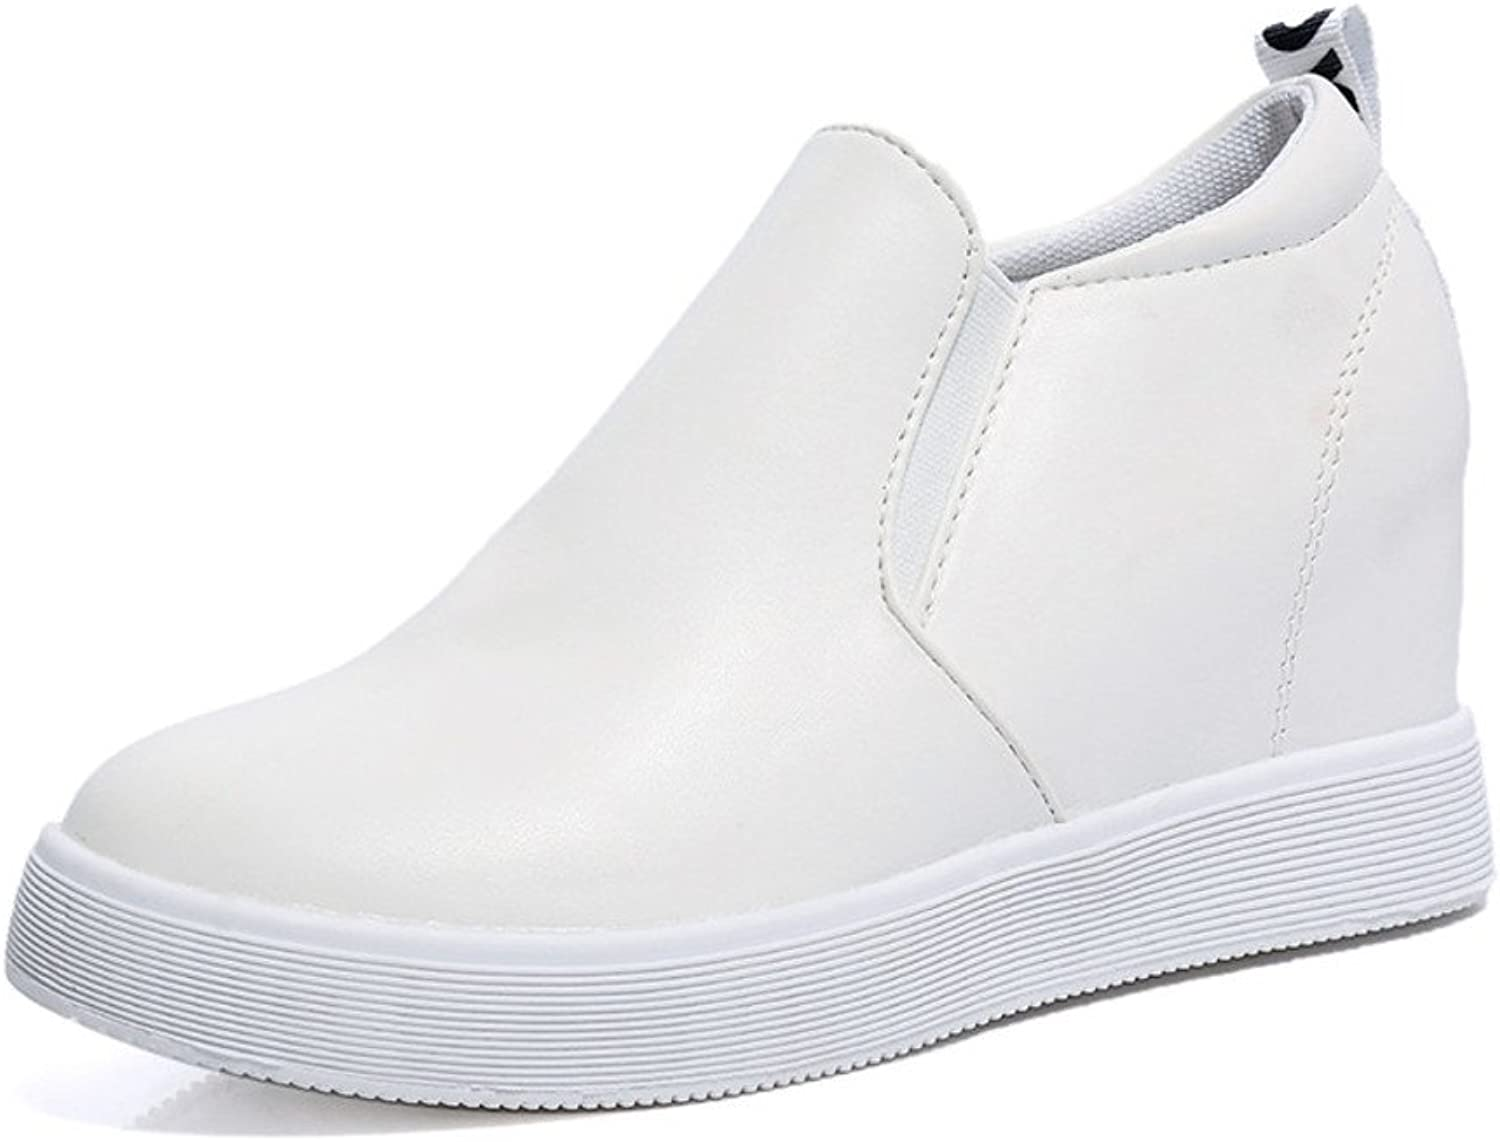 In The Korean Version of The Spring and Autumn and Stealth Increases Women's shoes Thick Student Casual shoes at The end of Loafer shoes